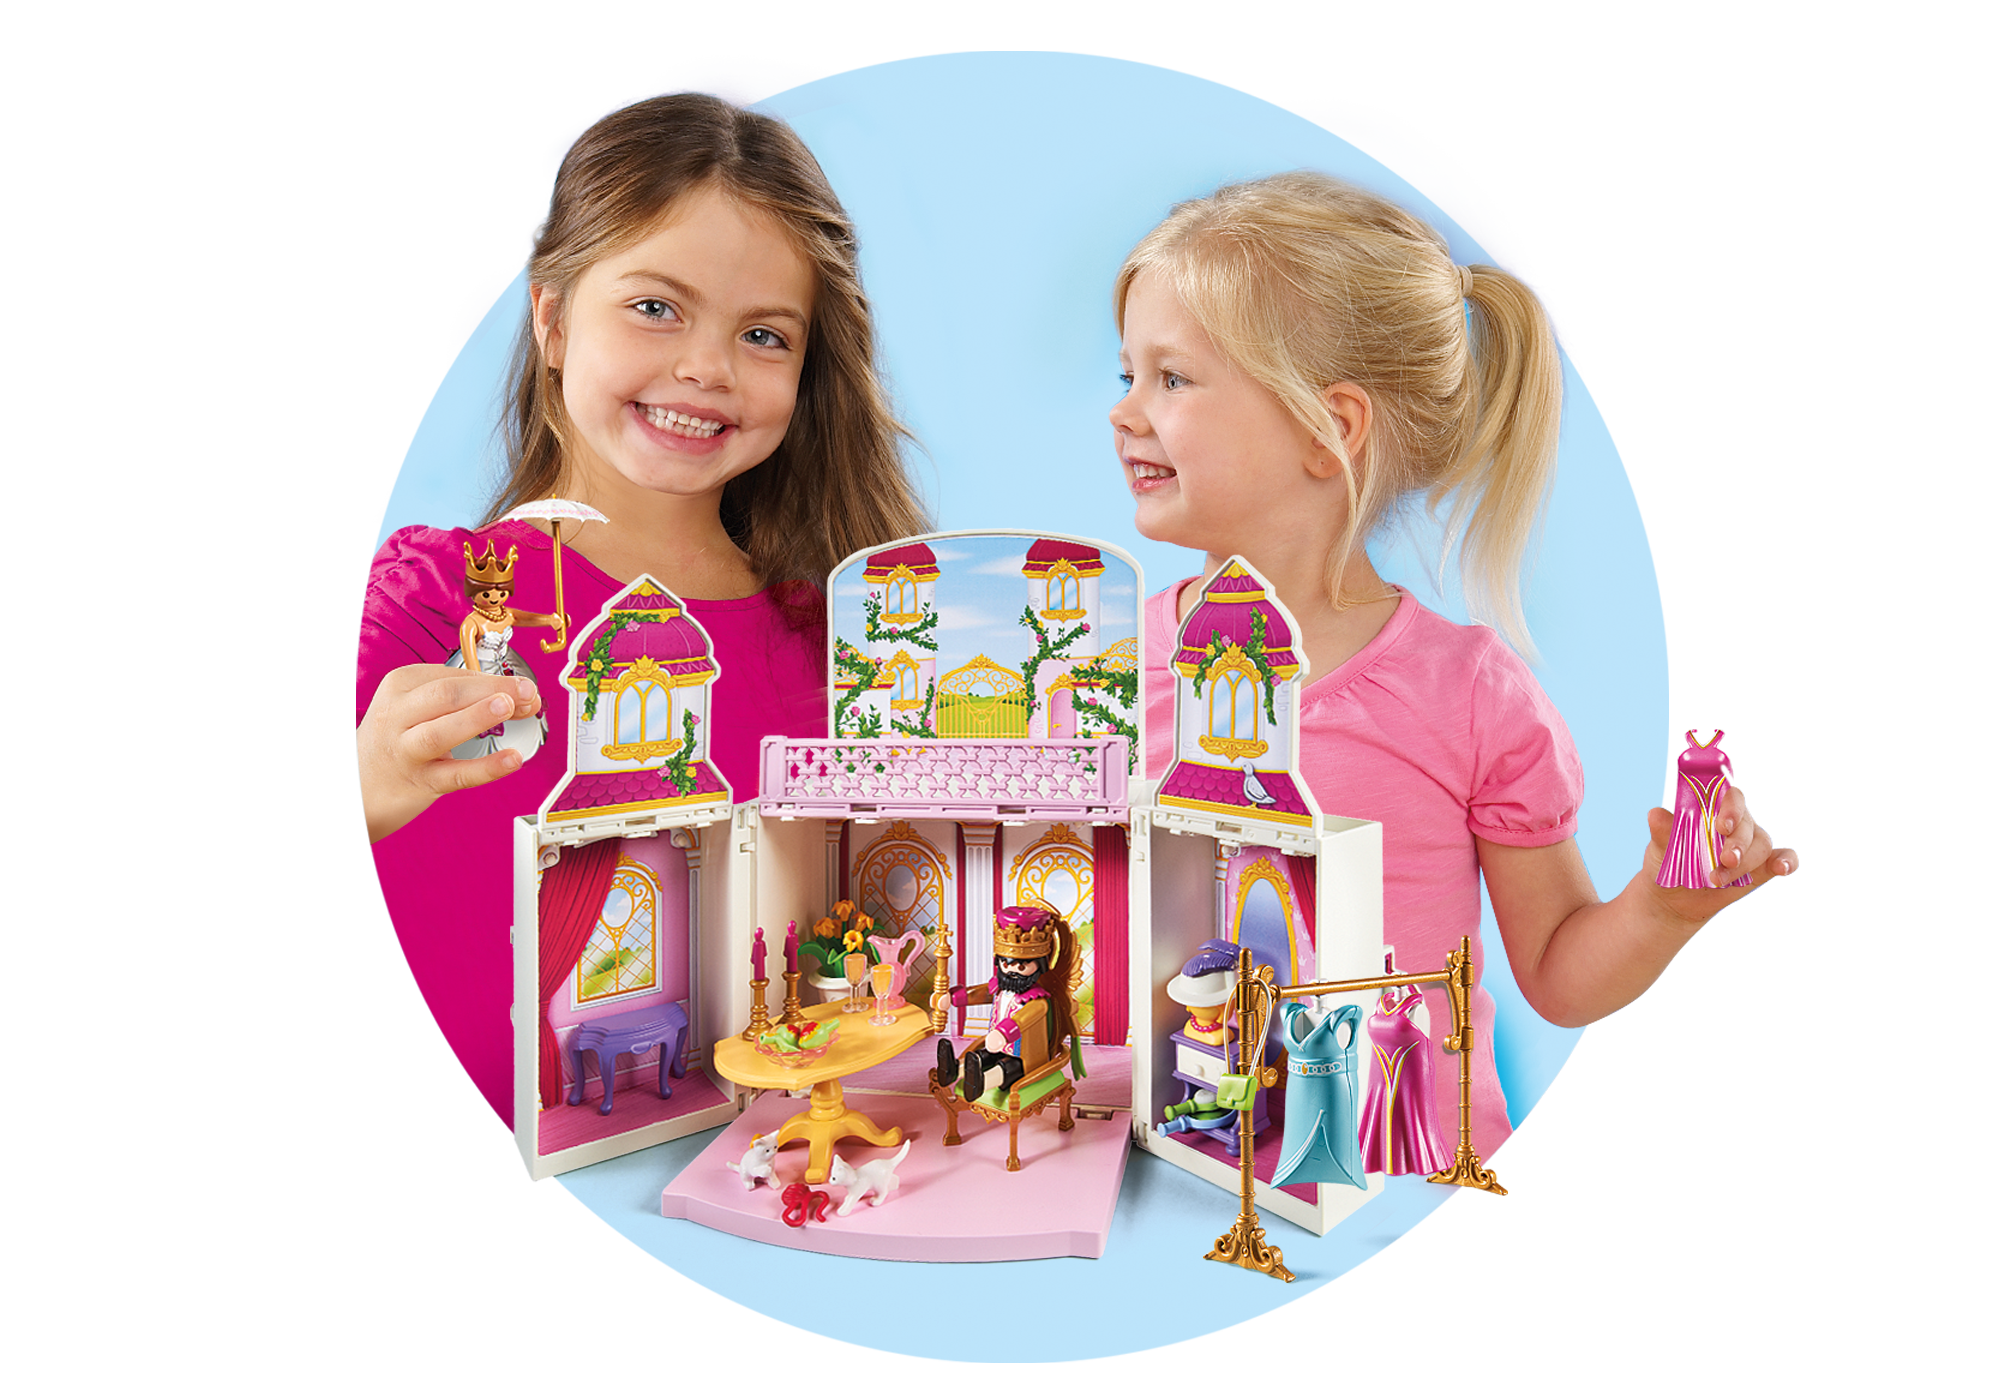 http://media.playmobil.com/i/playmobil/4898_product_extra4/My Secret Royal Palace Play Box